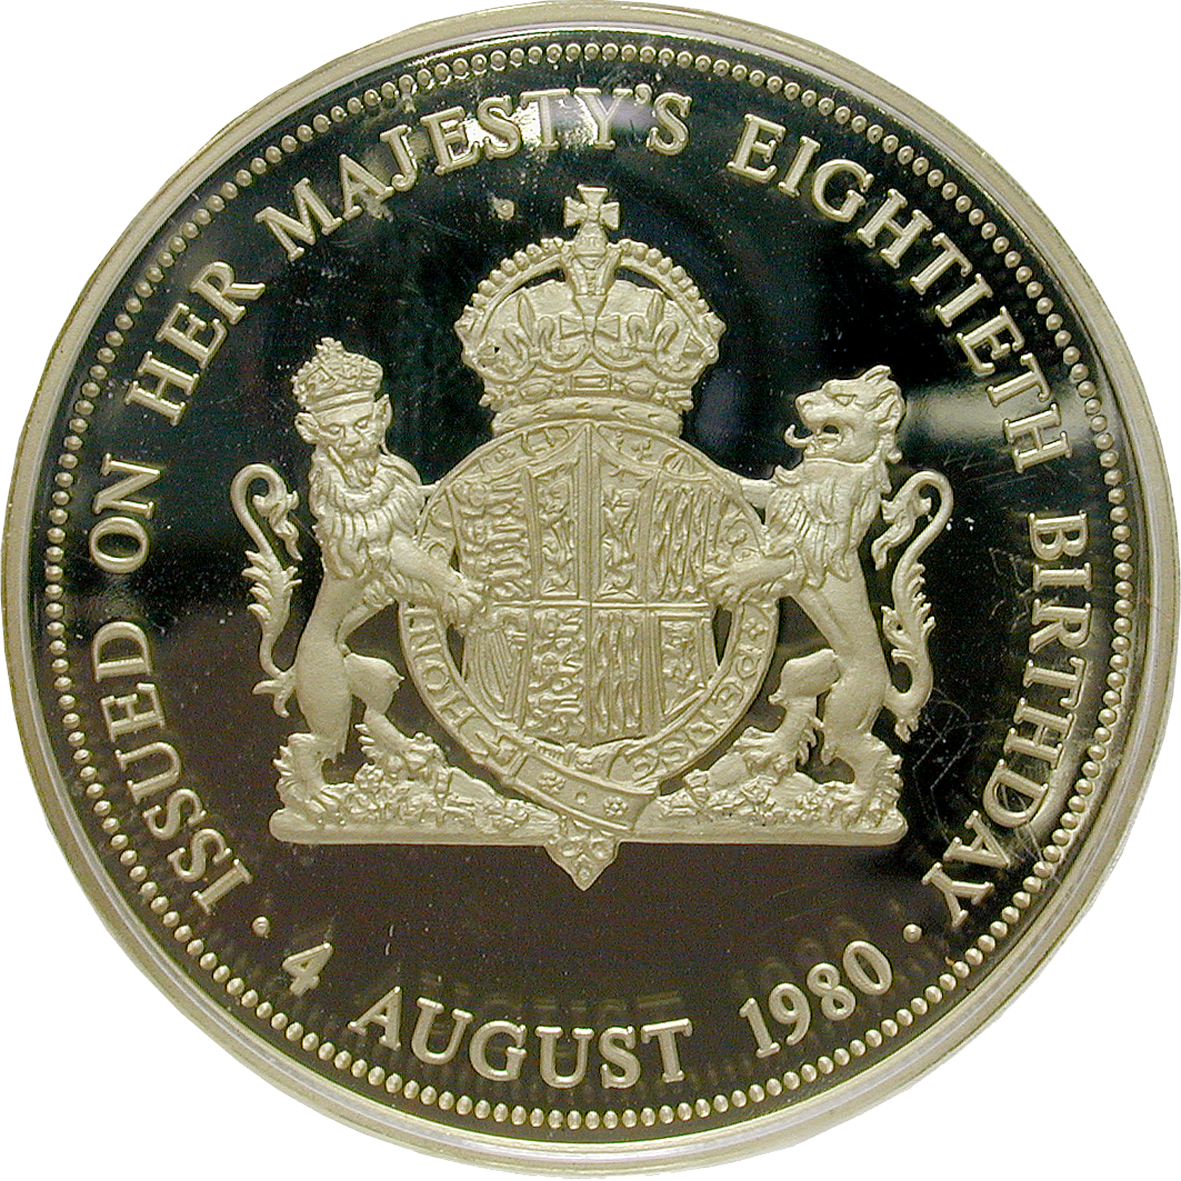 United Kingdom of Great Britain, Medal 1980 (reverse)